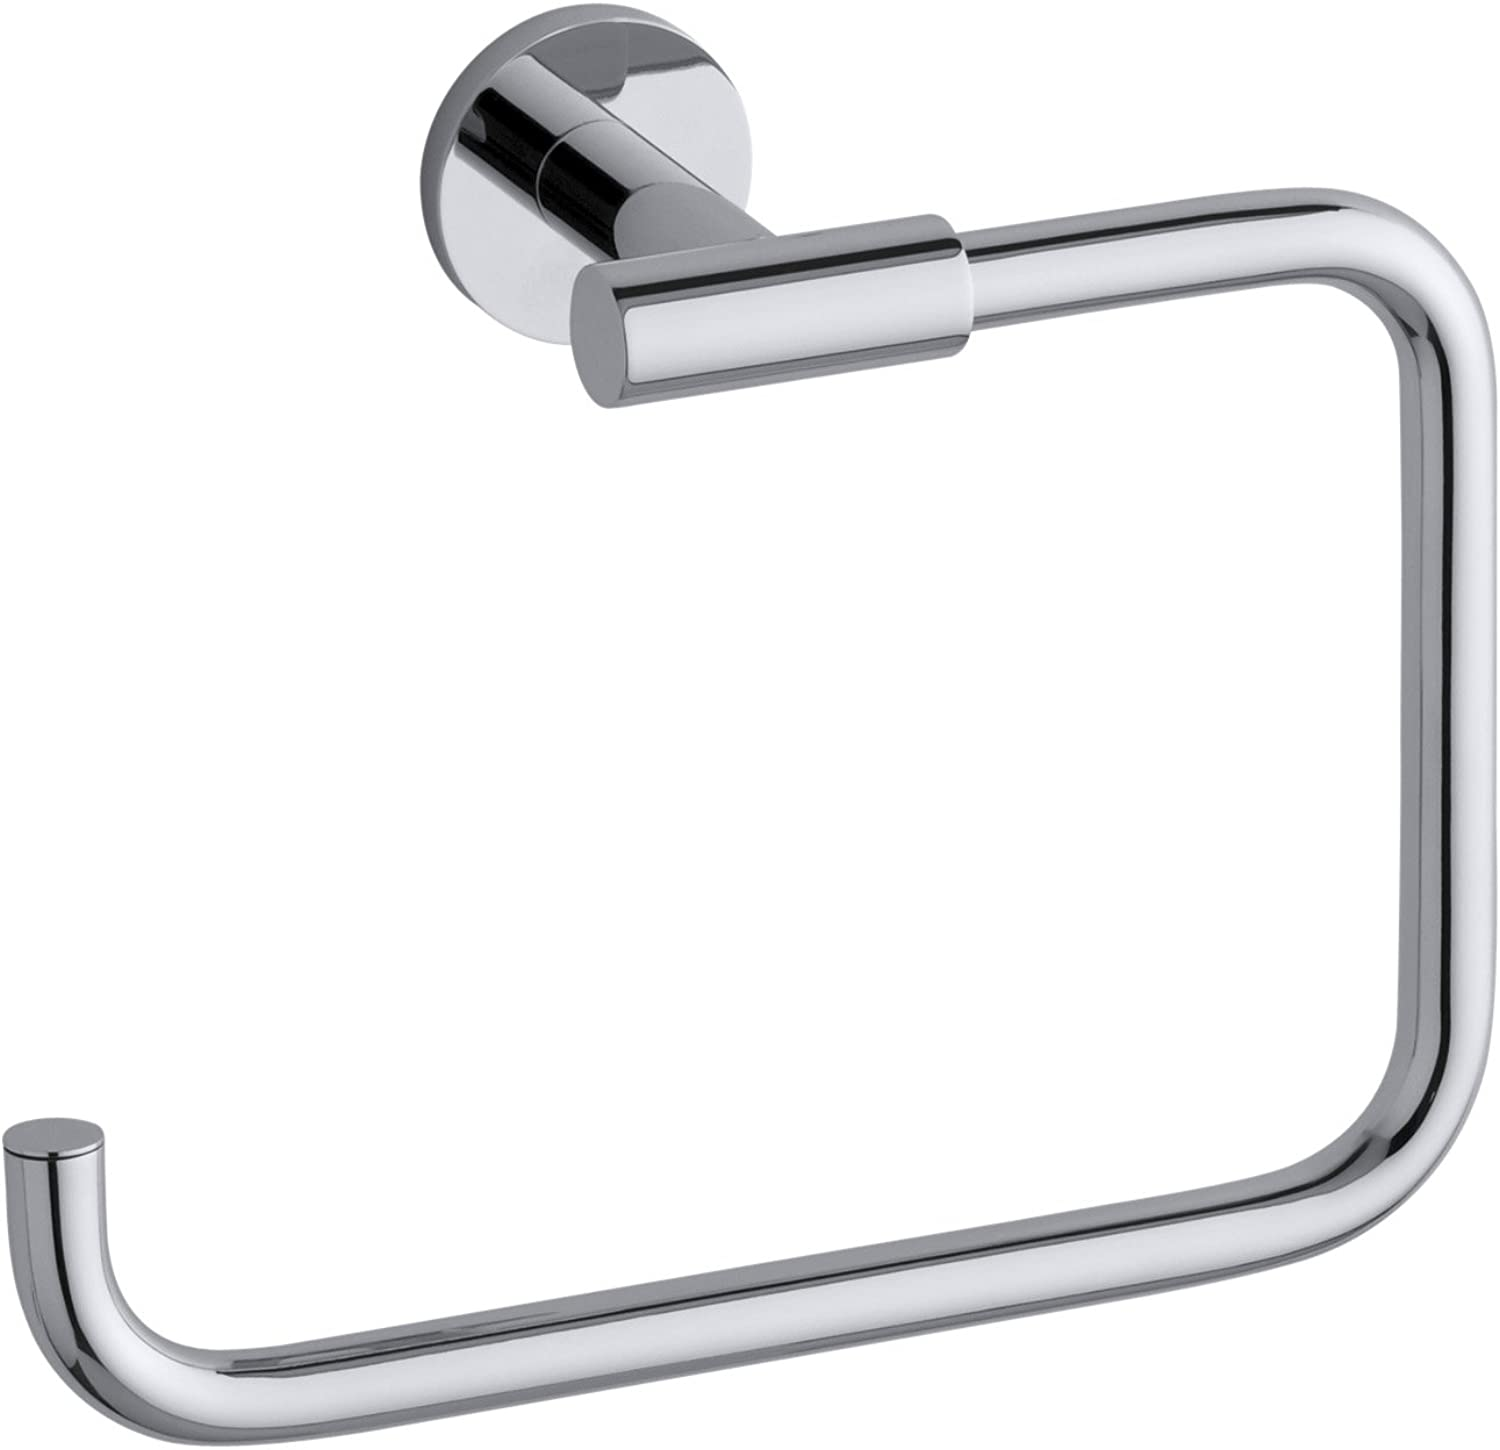 KOHLER K-14456-CP Stillness Bathroom Towel Ring, Polished Chrome